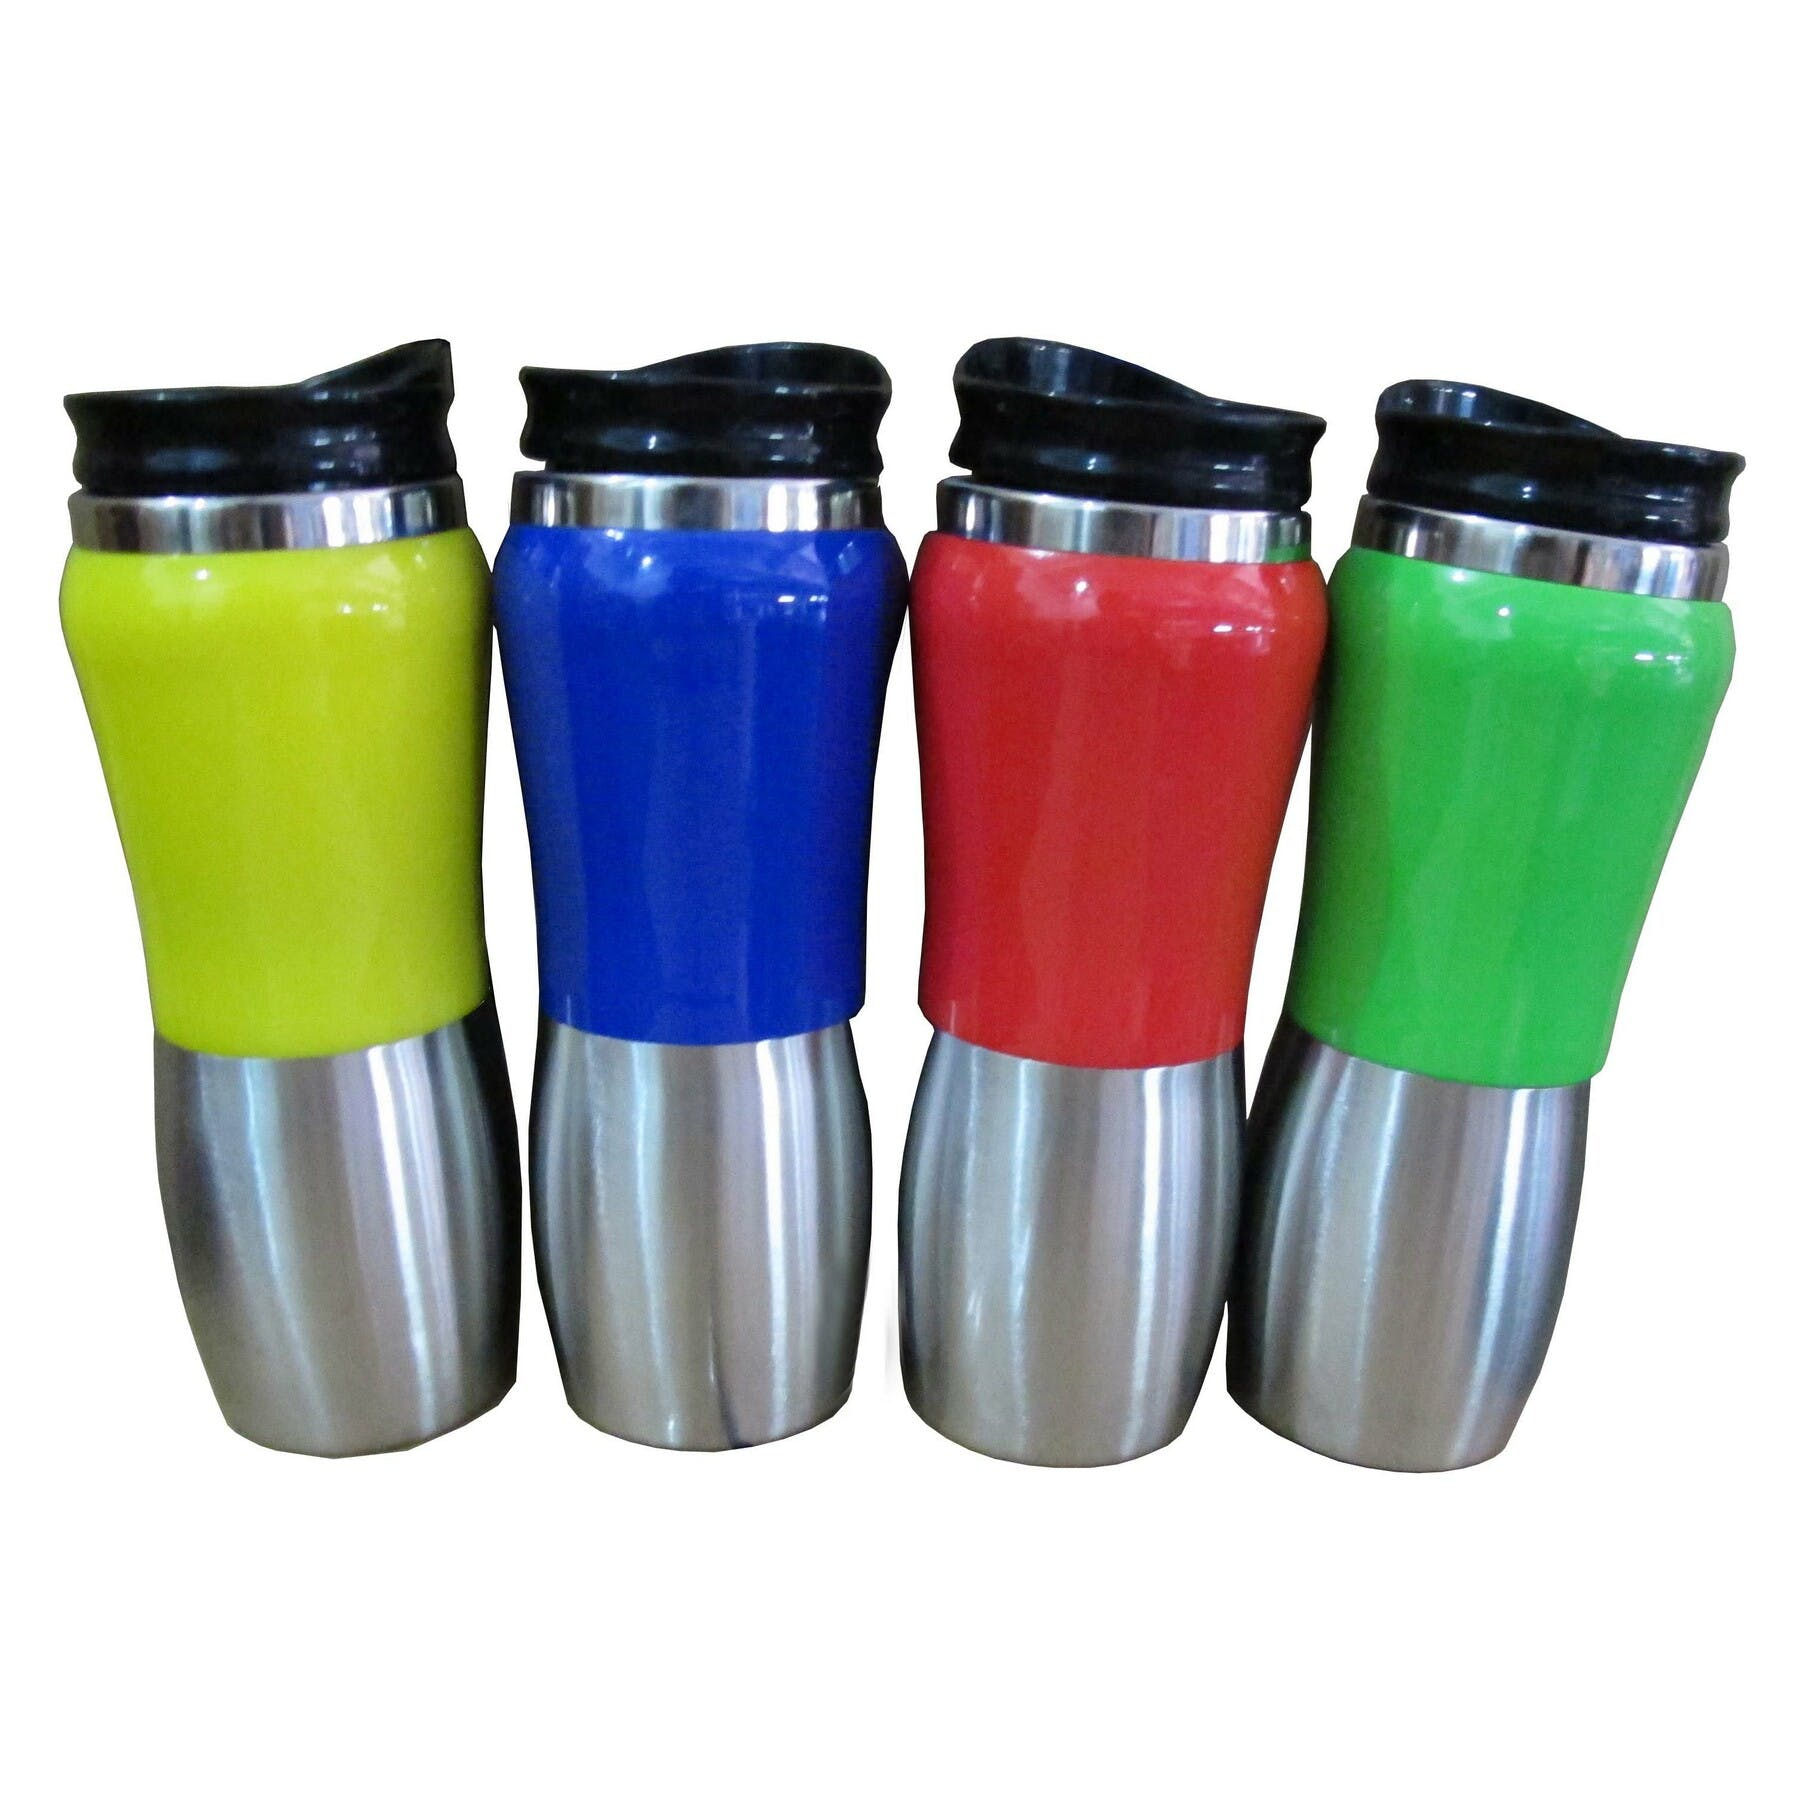 16 Oz. Stainless Steel Water Bottle (Item # YJLMM-JBPJH)